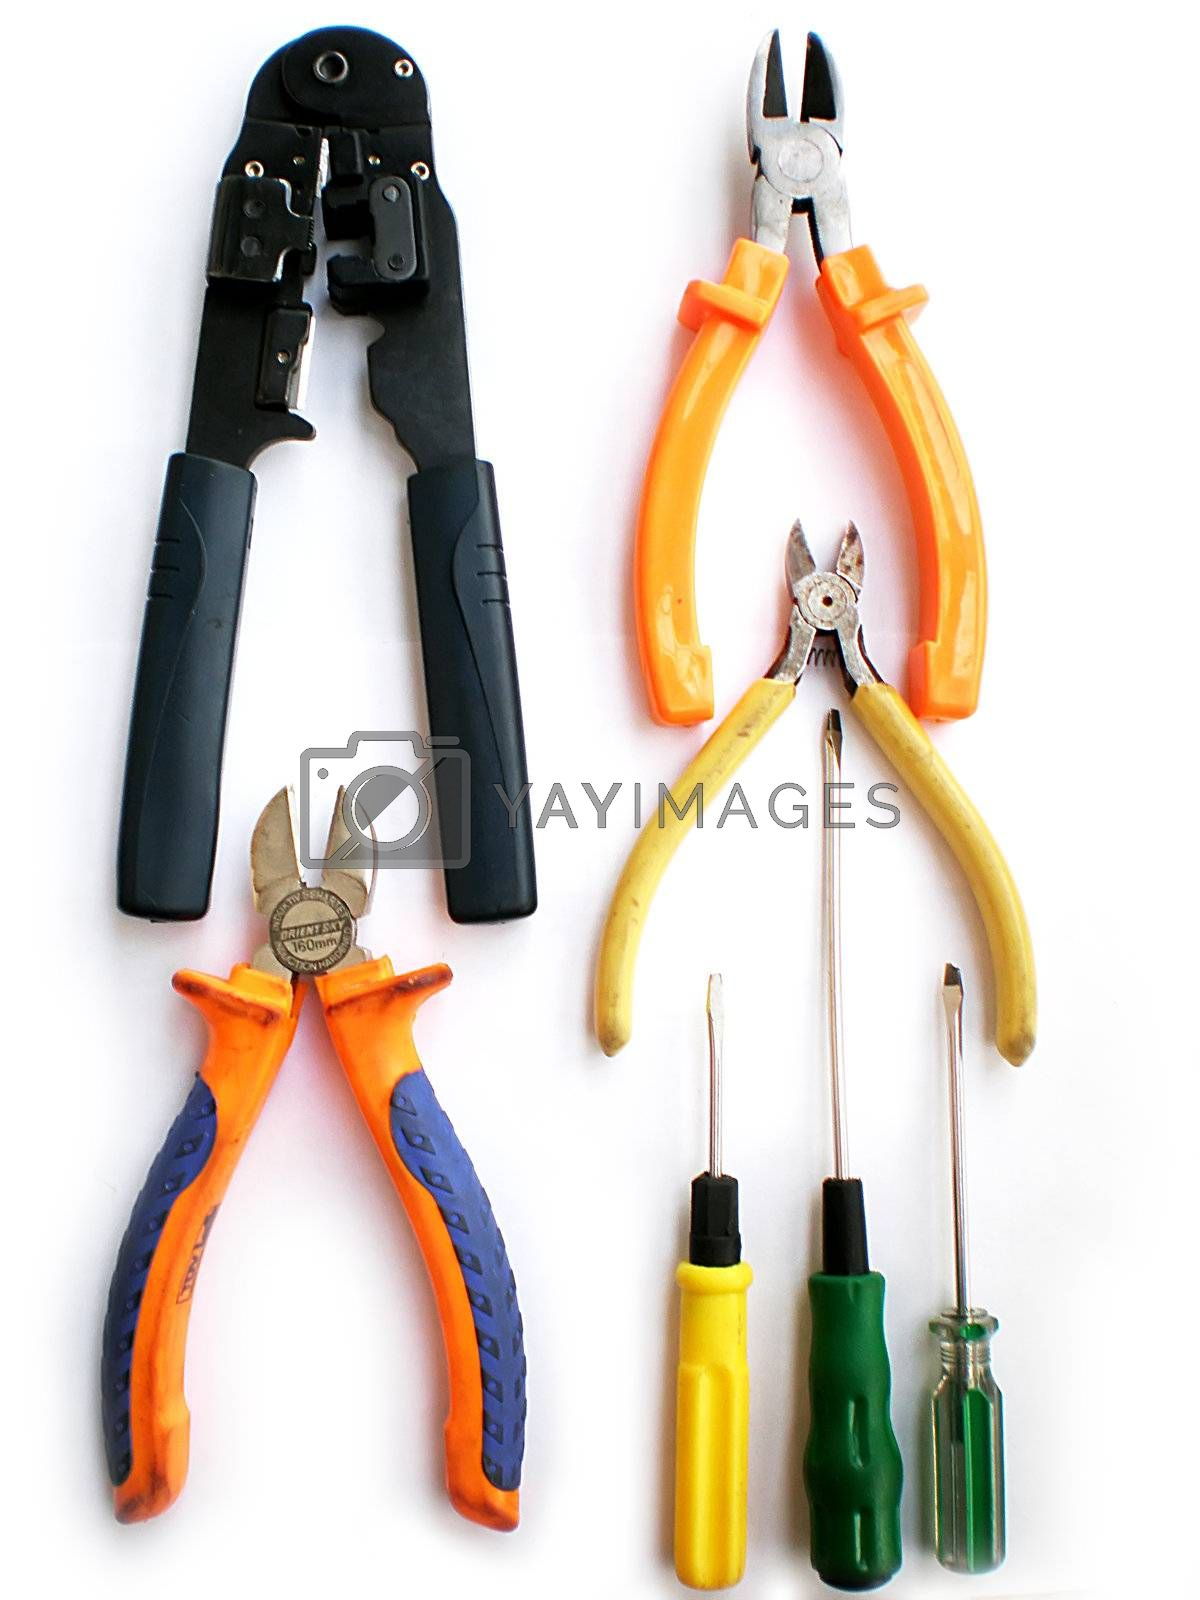 Royalty free image of pliers by Dessie_bg